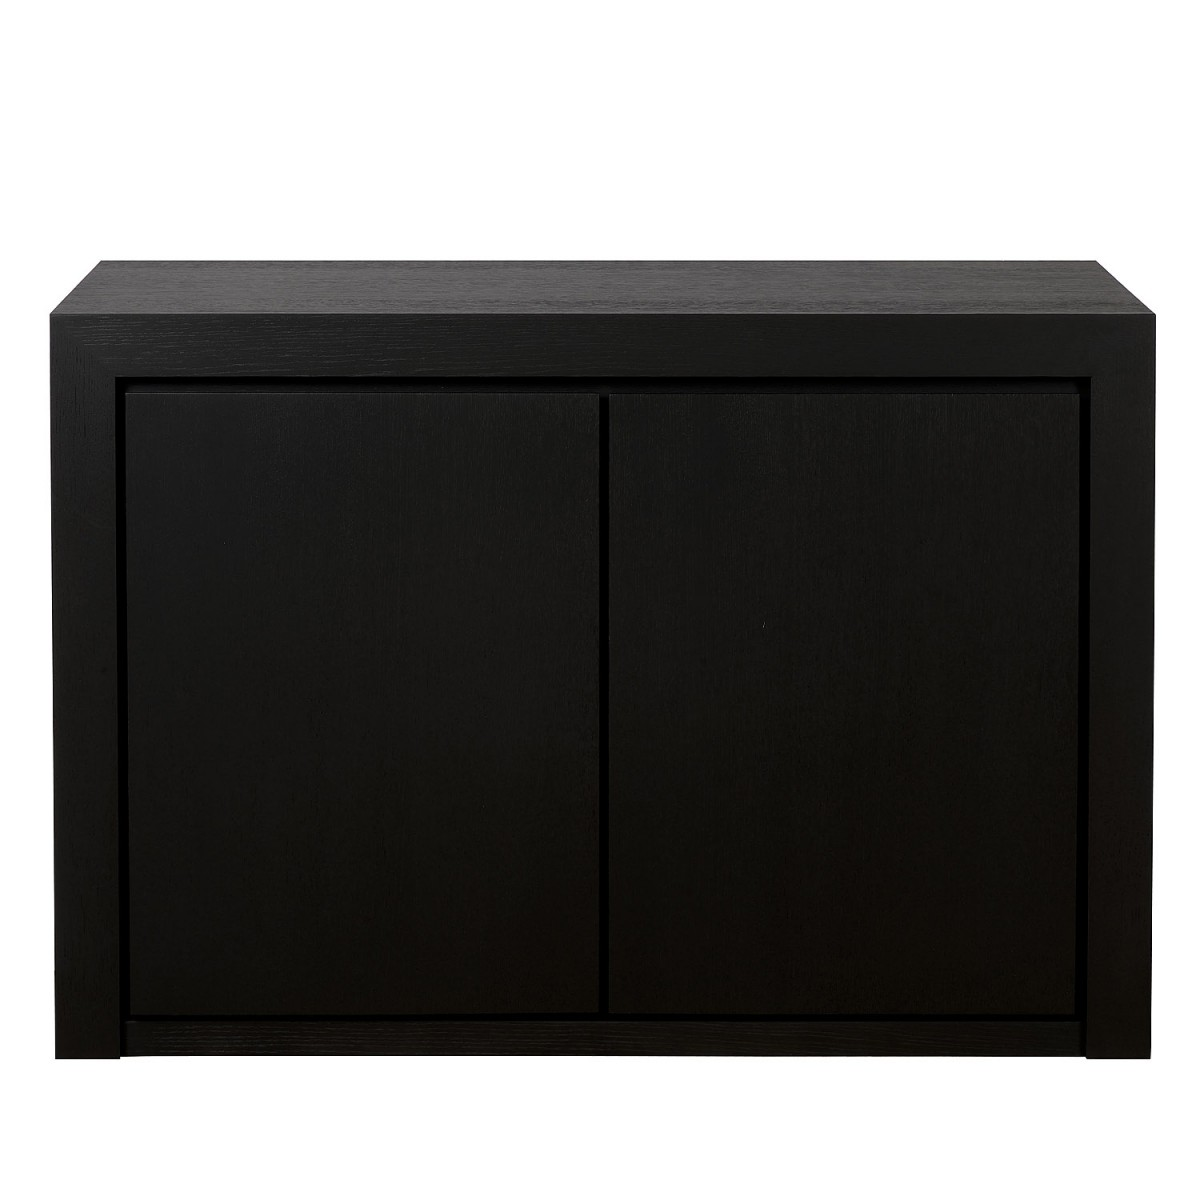 Sideboard metro 120 2d charrell for Sideboard 120